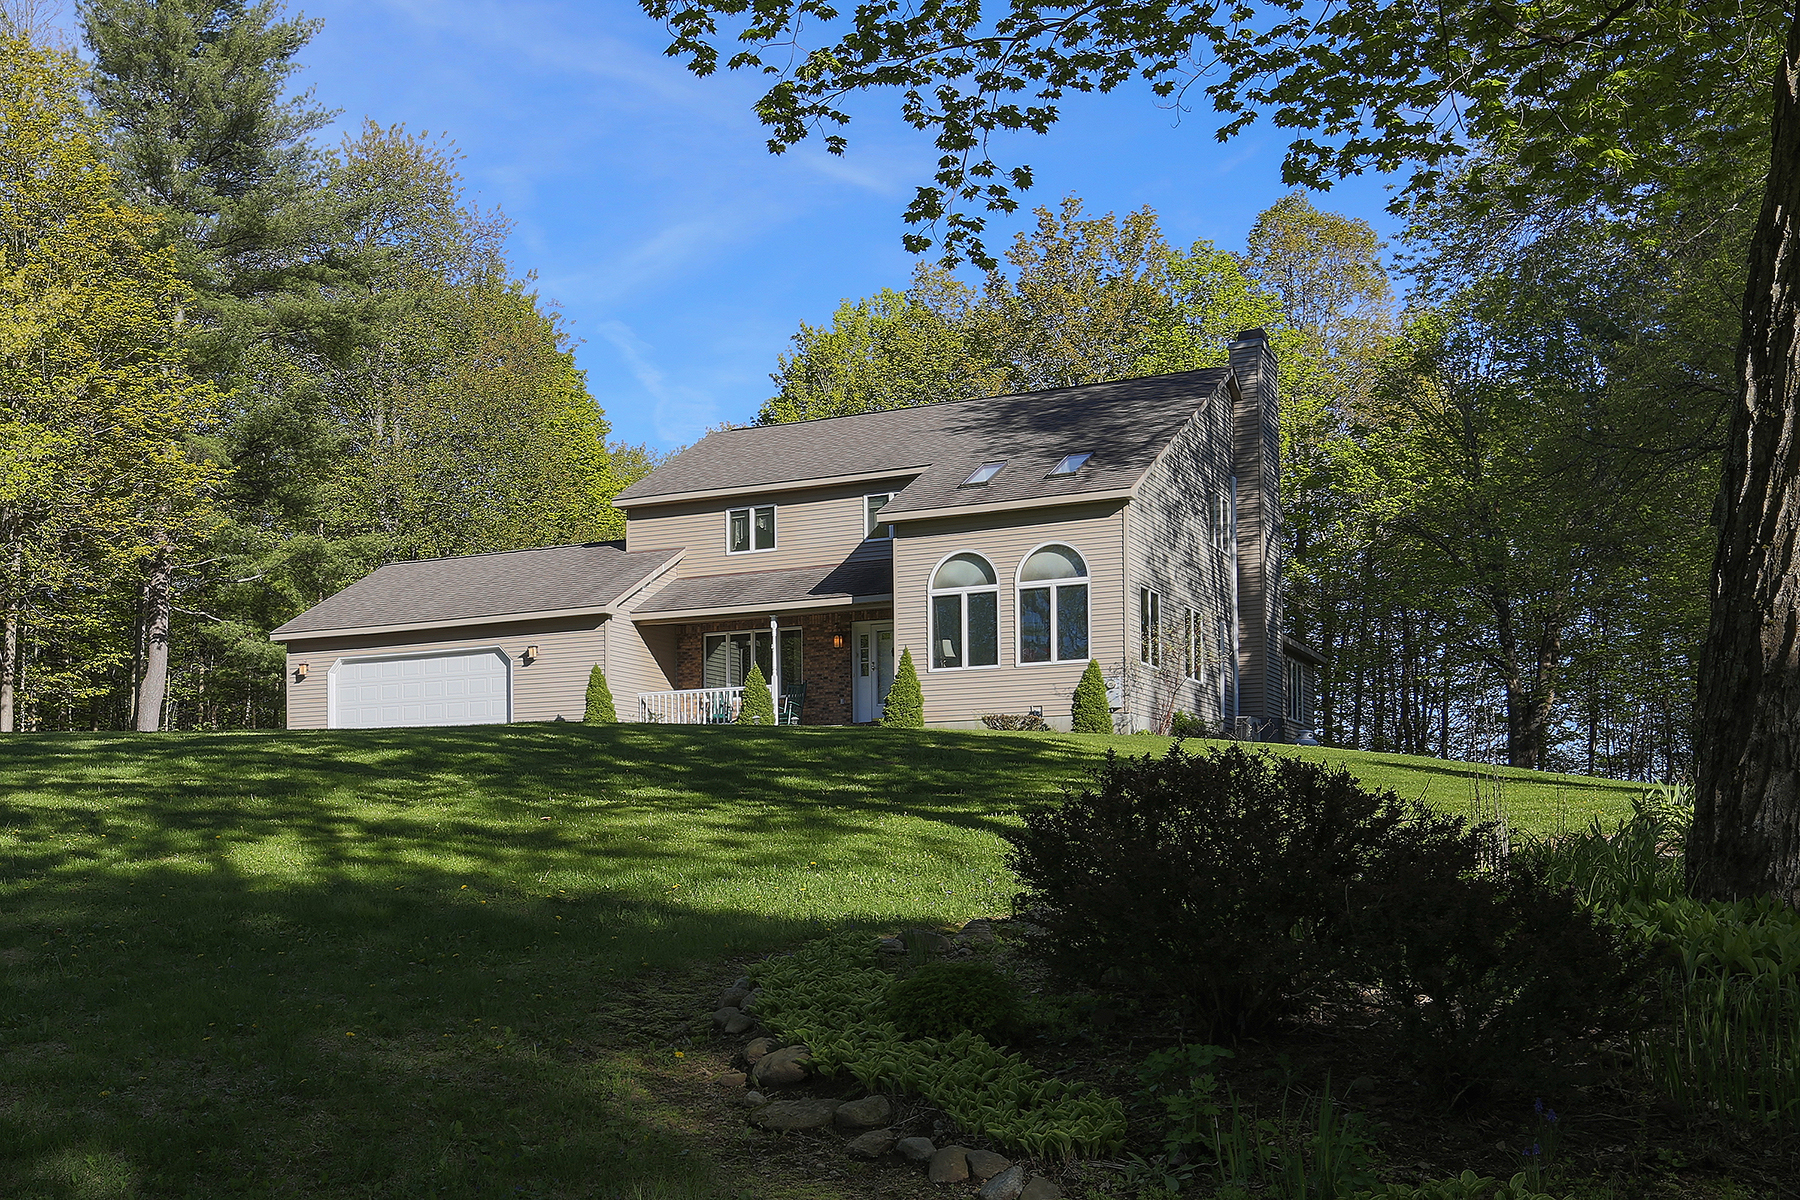 Single Family Home for Sale at Lakeview Casa 390 Lakeview Rd Broadalbin, New York 12025 United States